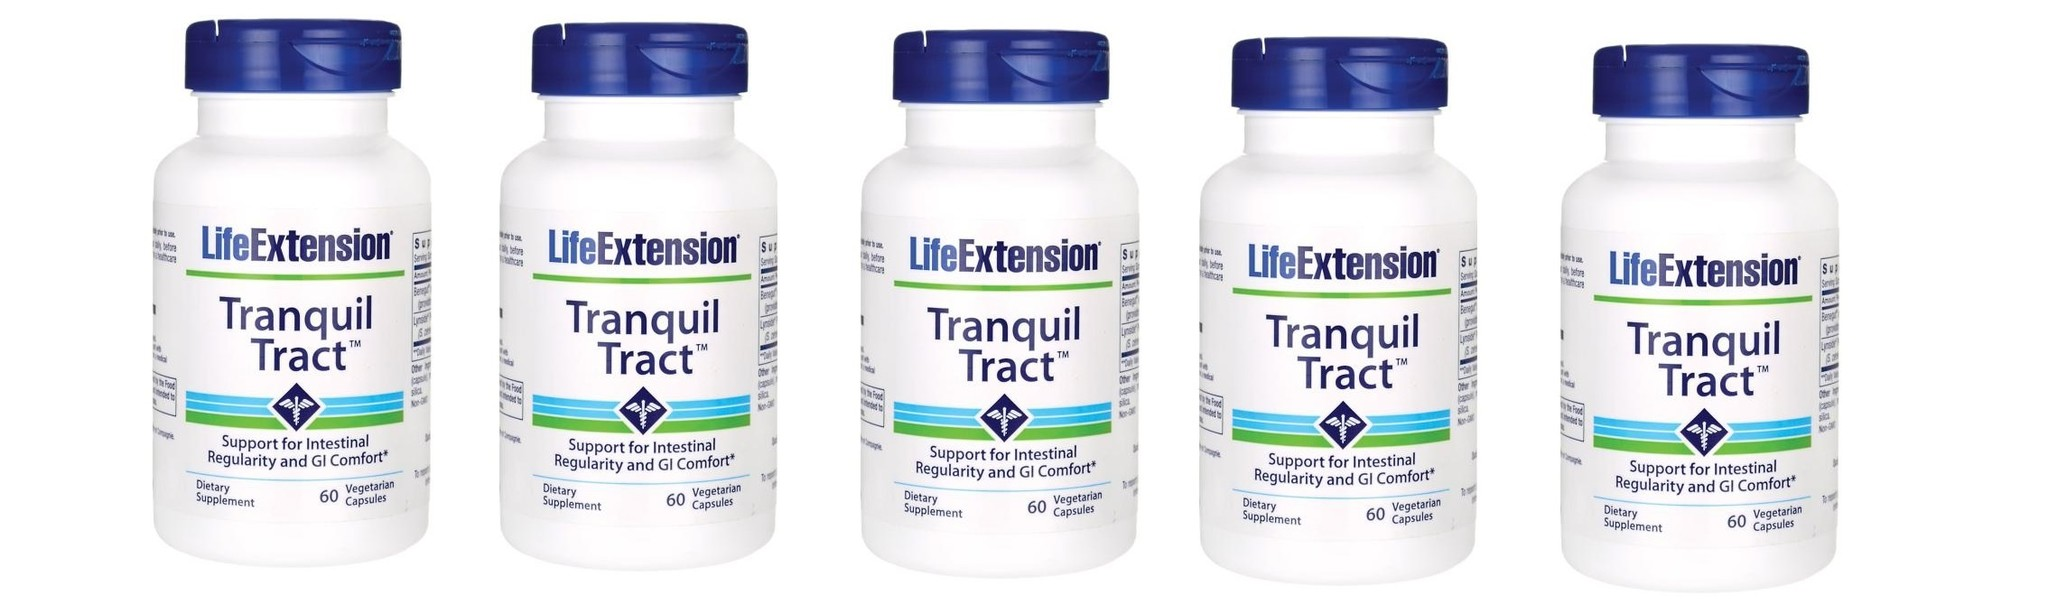 Life Extension Tranquil Tract, 60 Vegetarian Capsules, 5-packs